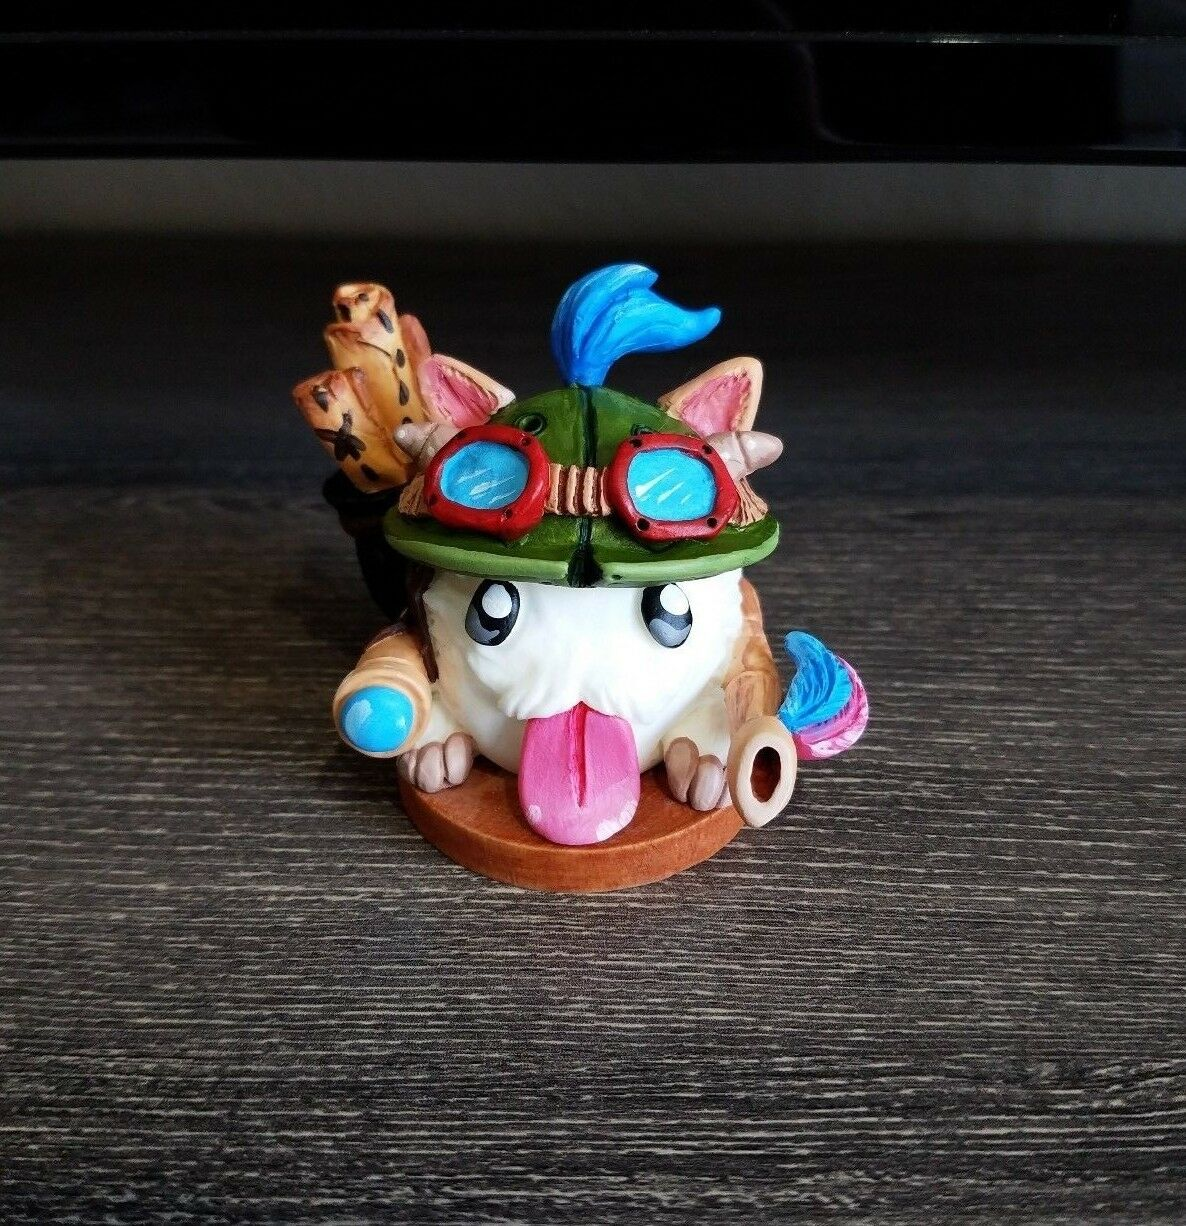 League of Legends Teemo Poro US Seller cute figure kawaii